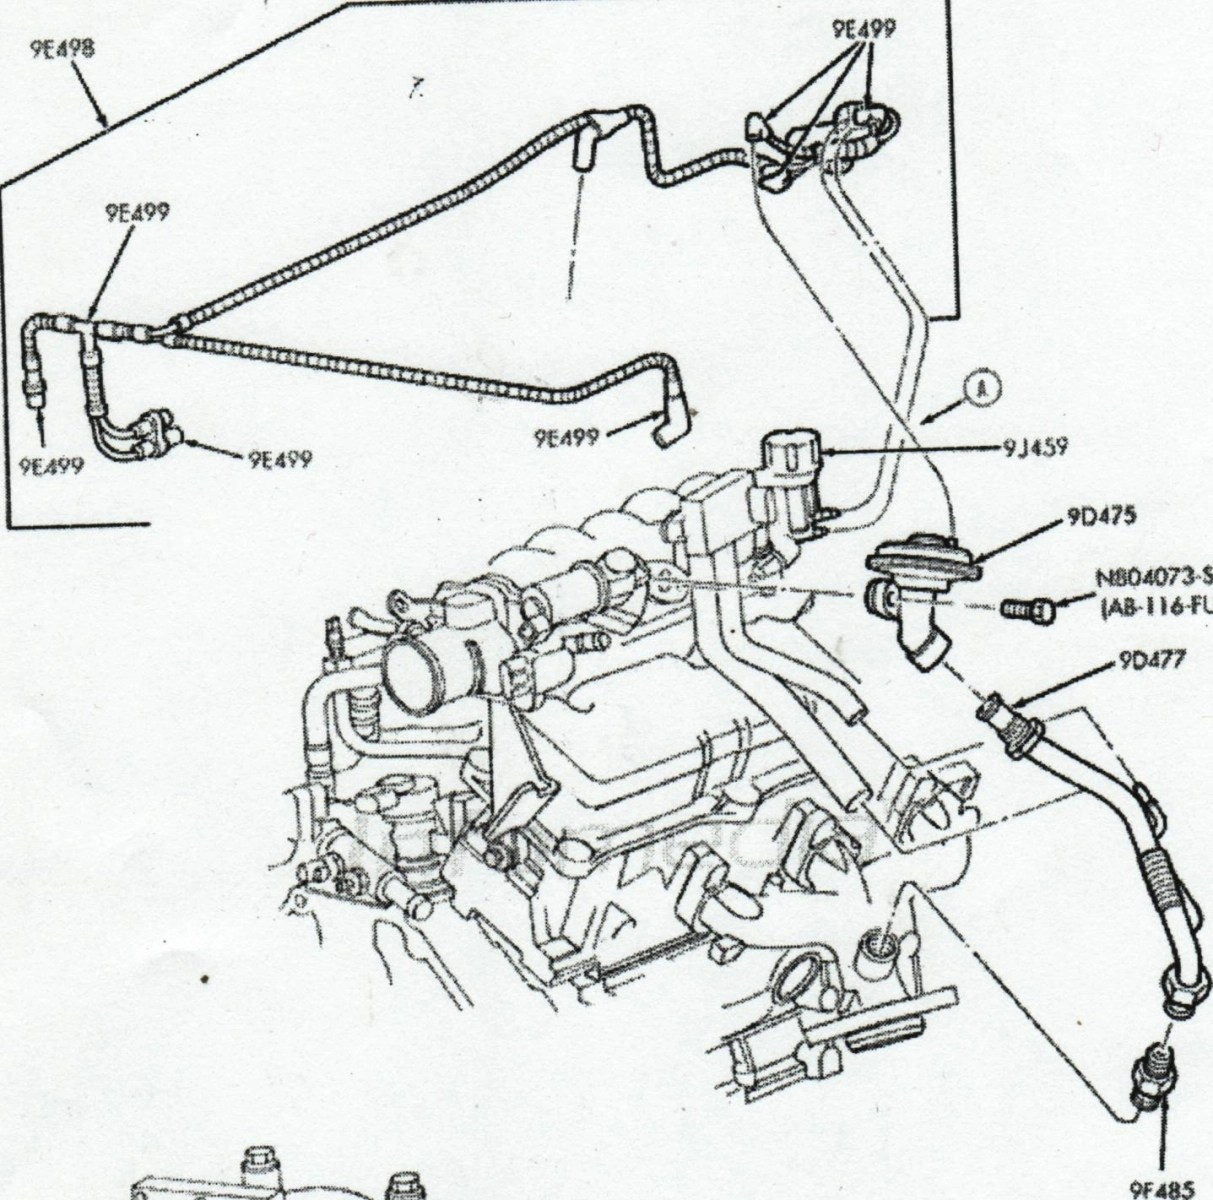 Ford Taurus Radiator Hose Diagram